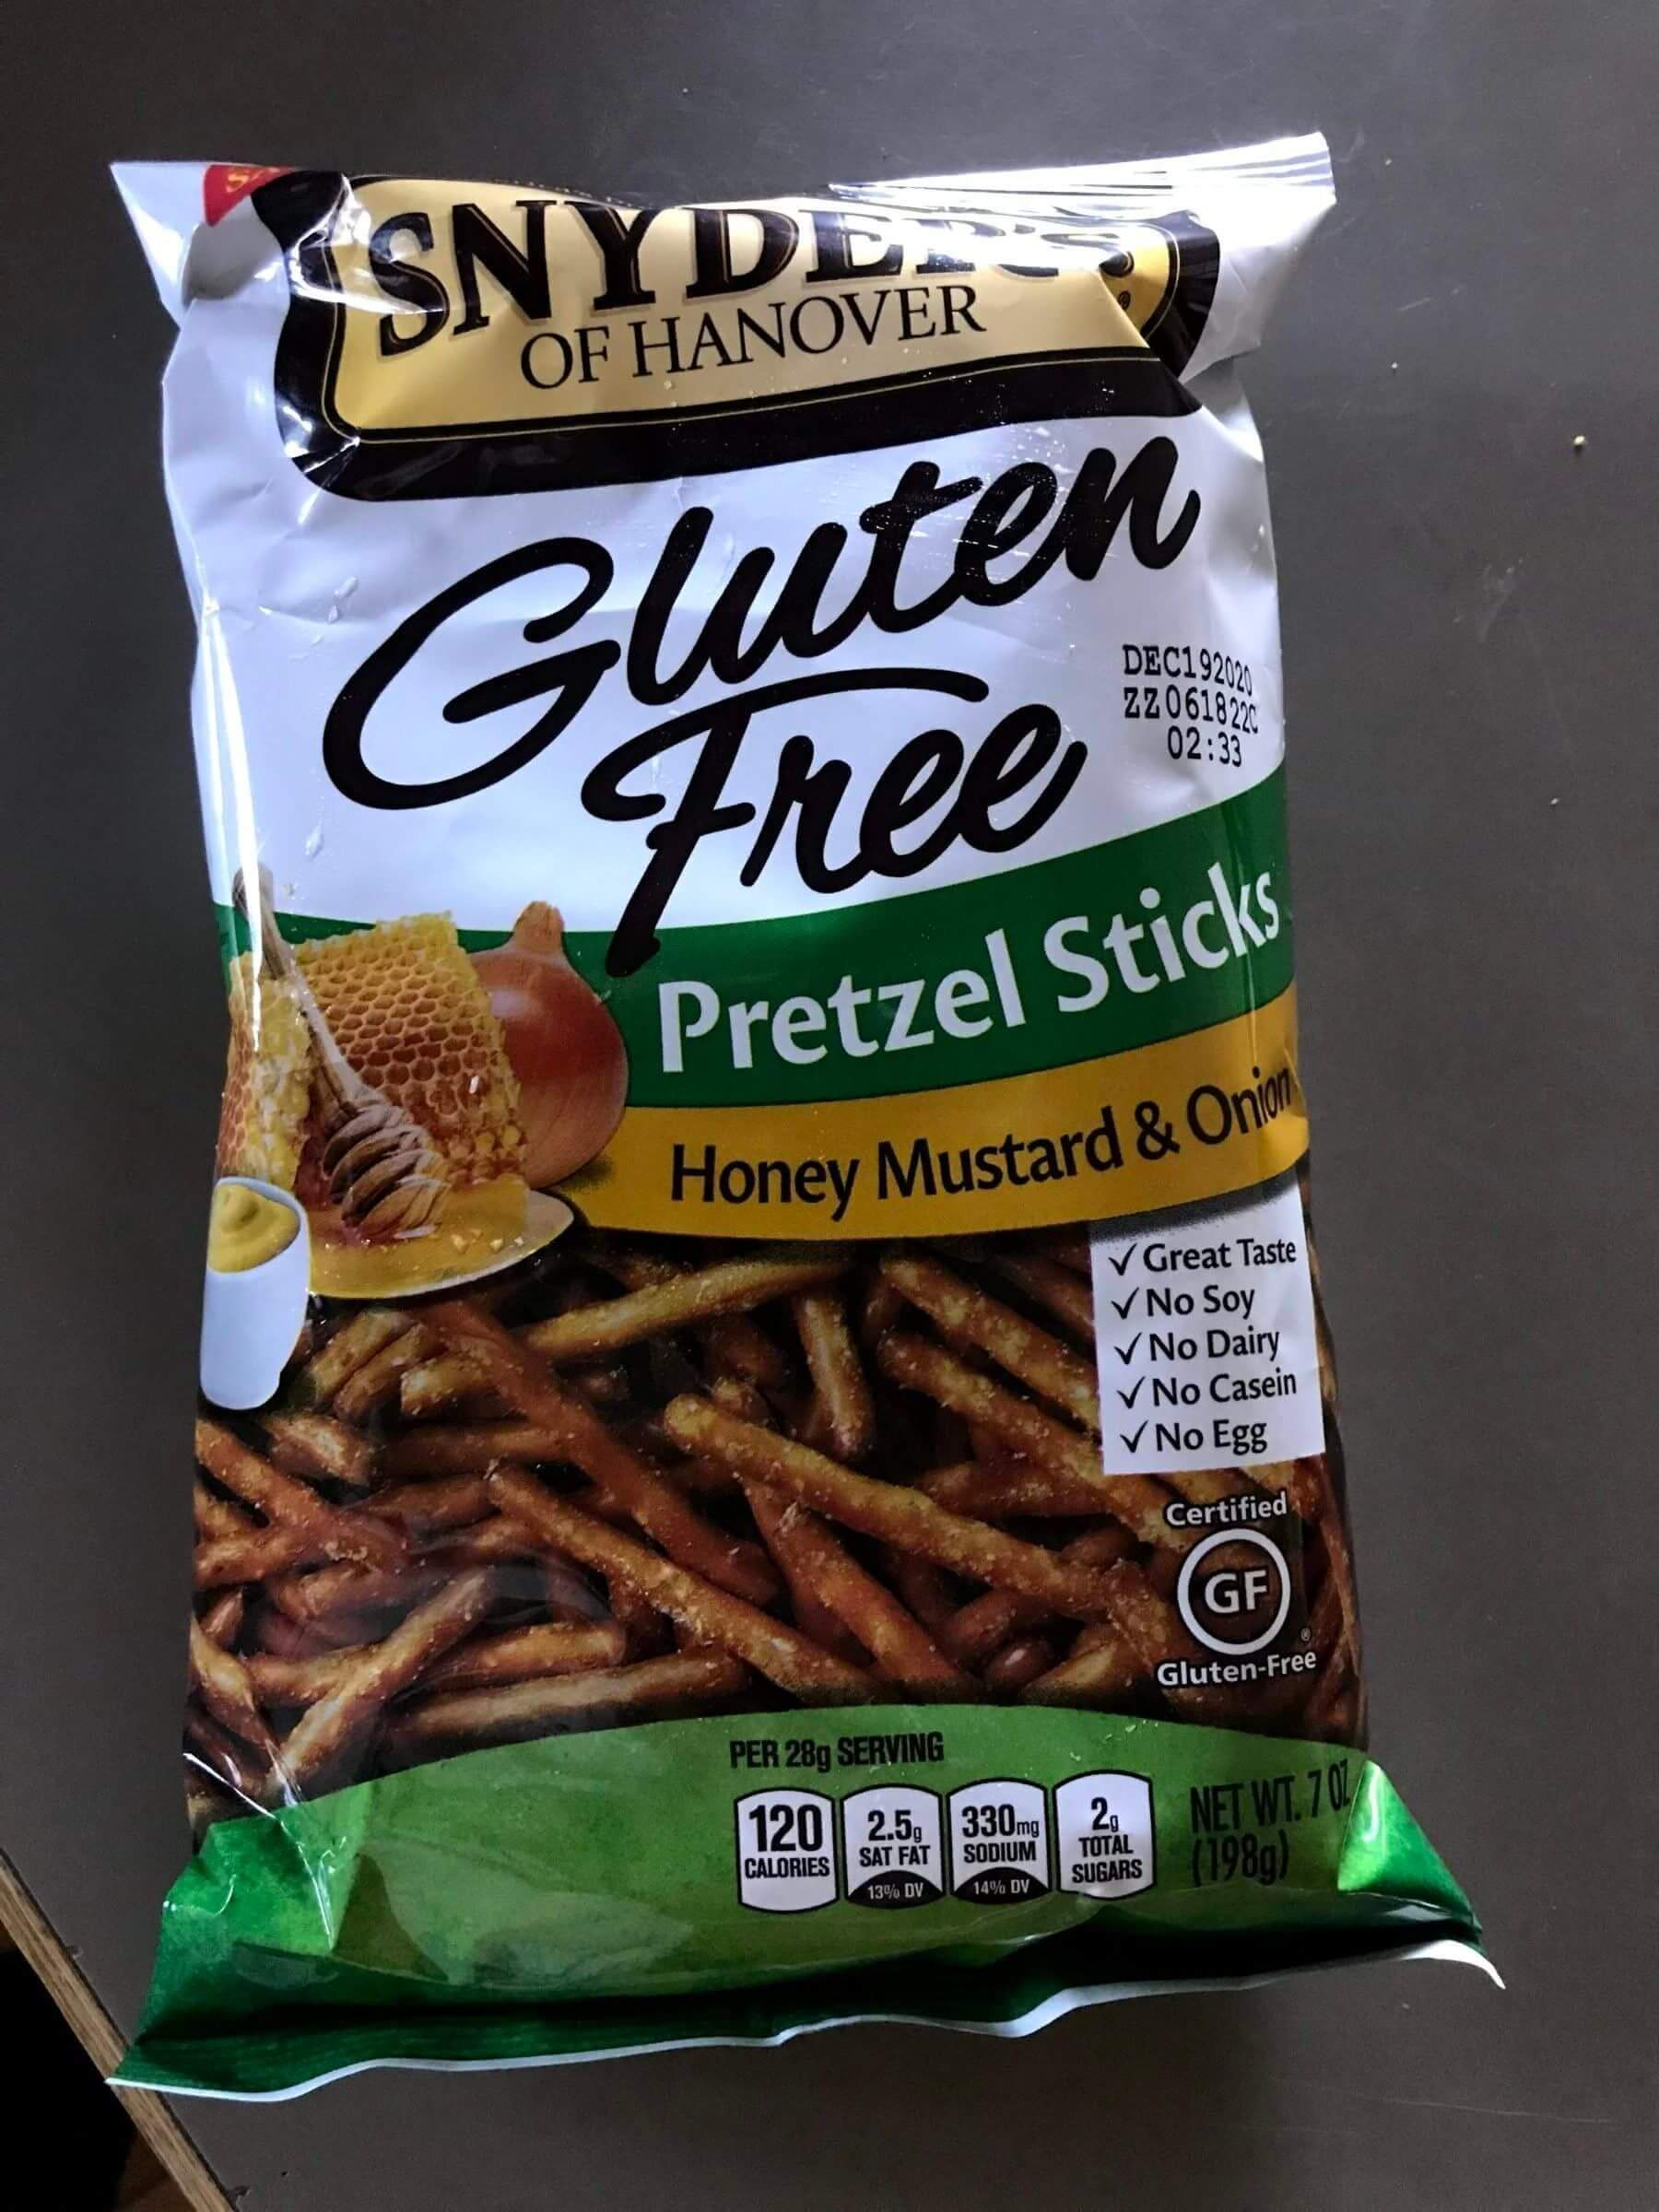 Product Photo of Snyder's of Hanover Gluten Free Honey Mustard and Onion Pretzels